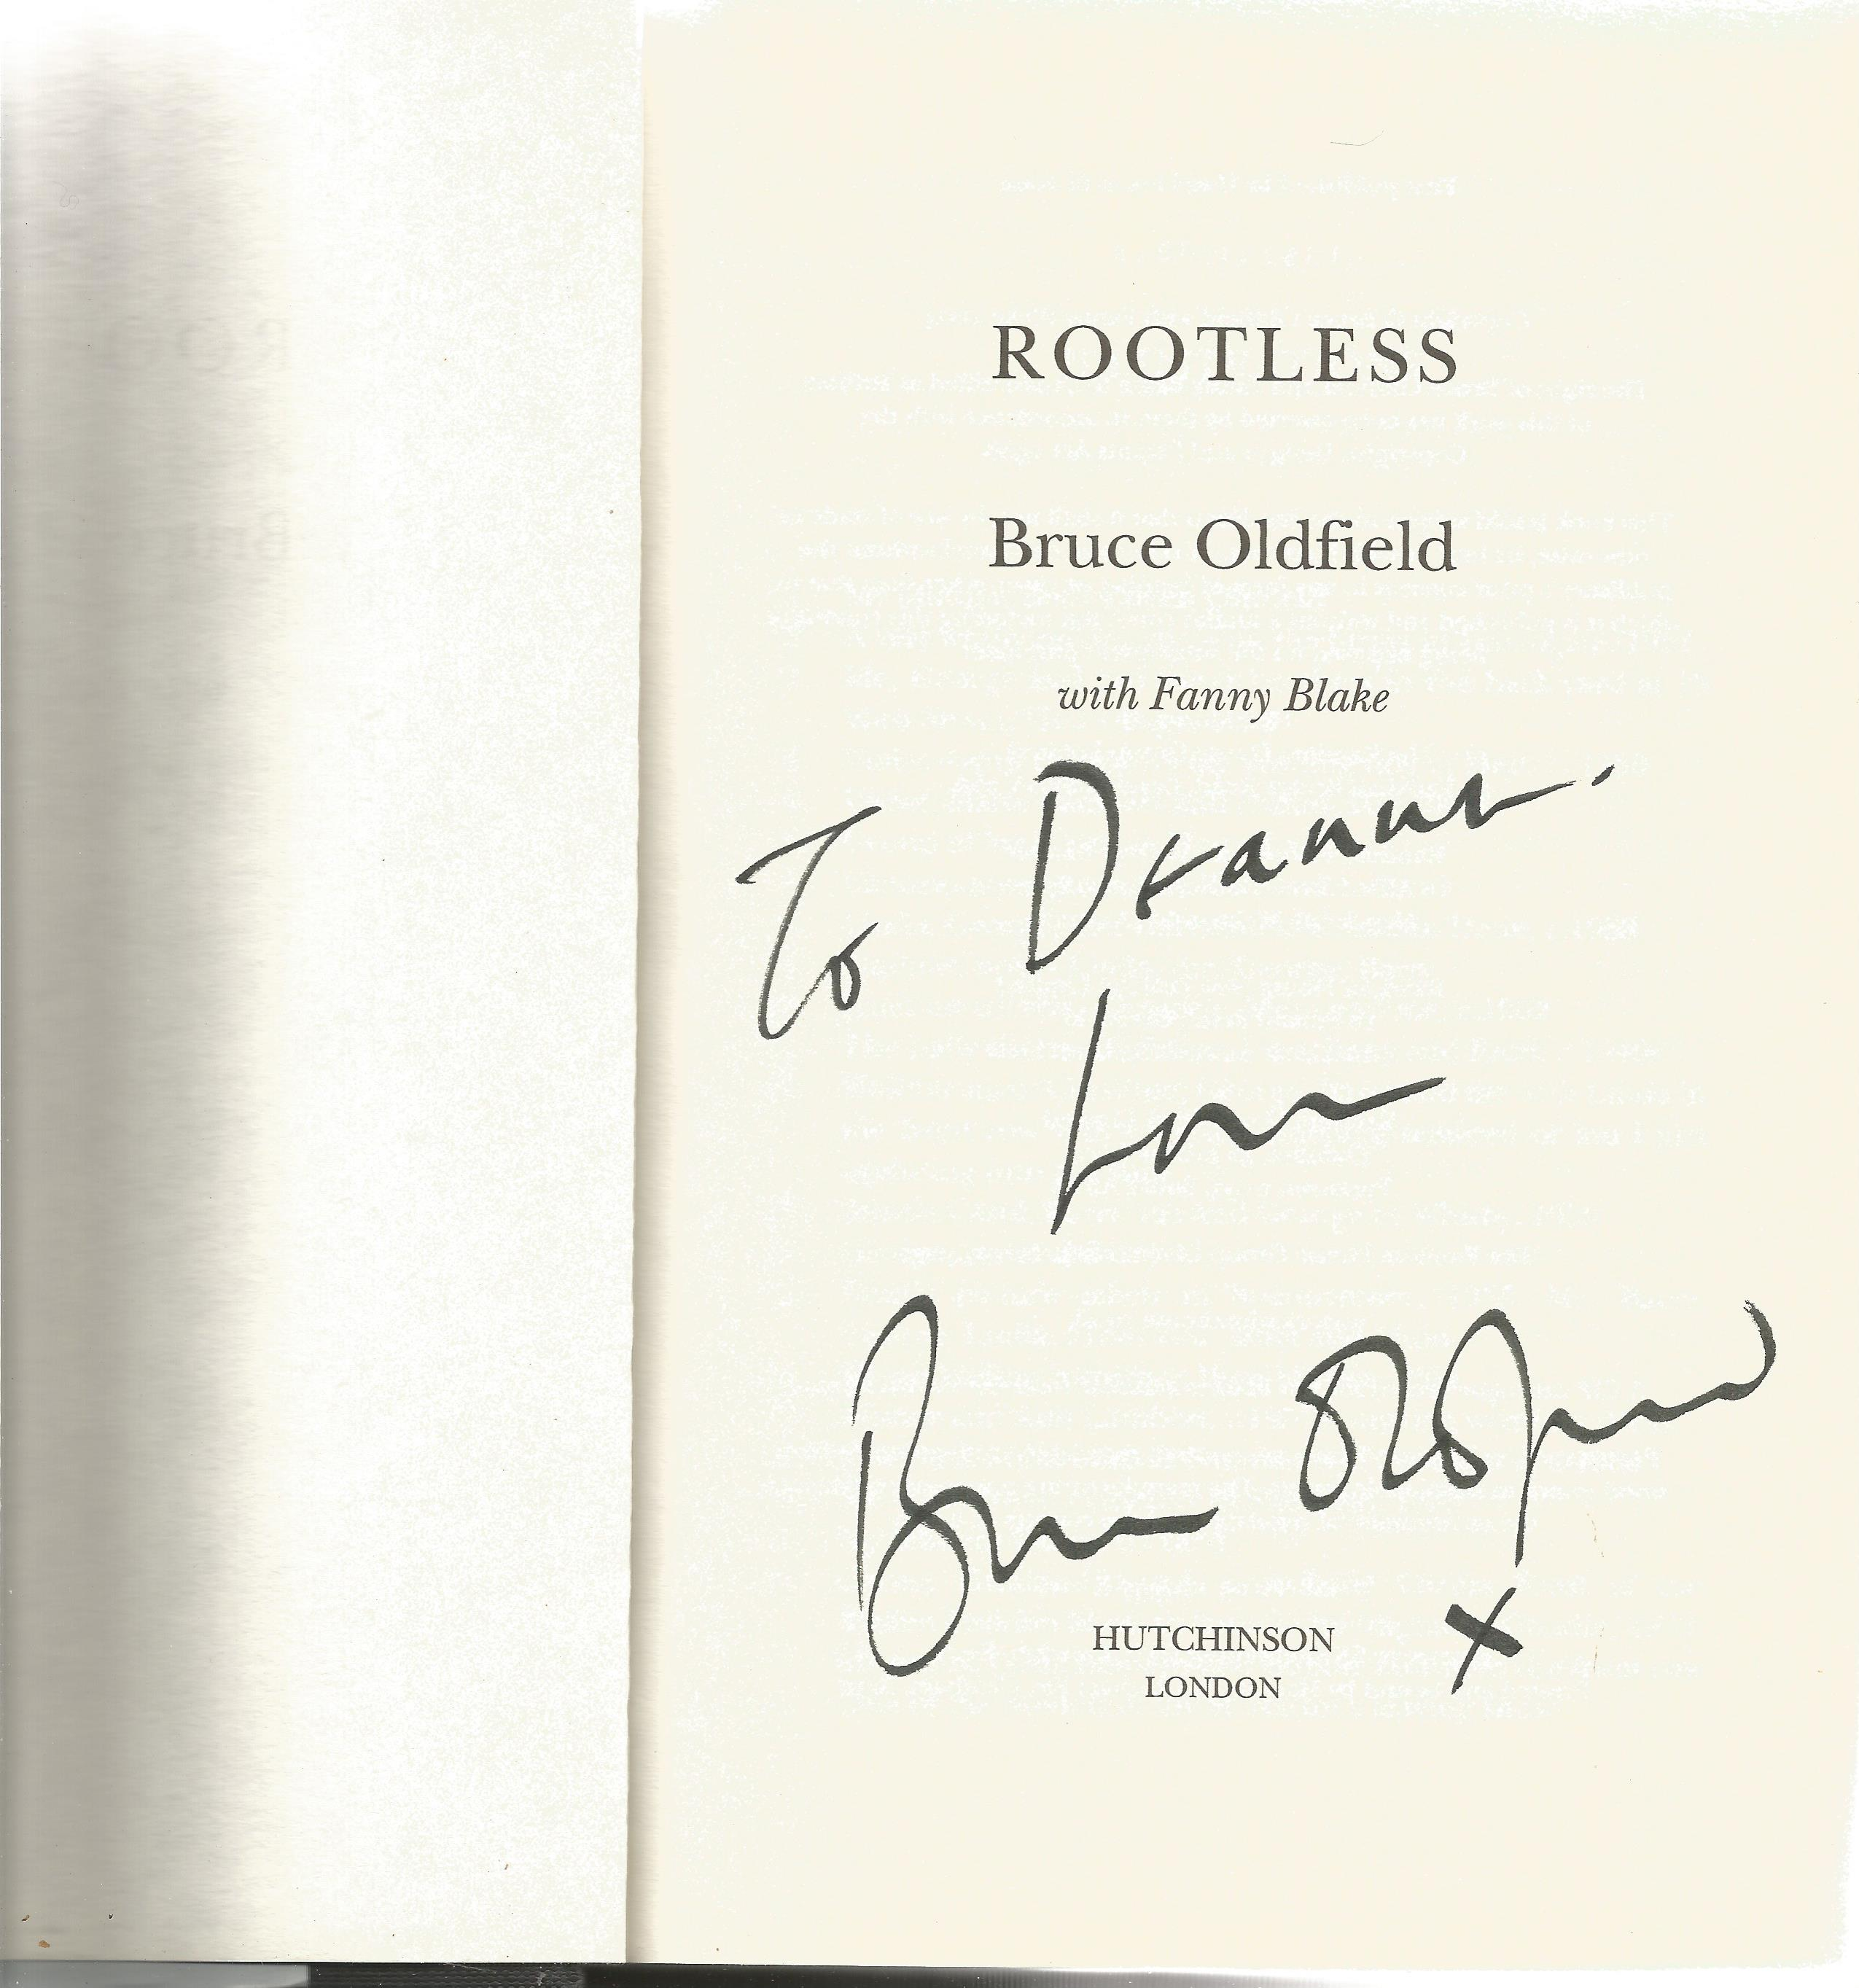 Bruce Oldfield signed autobiography Rootless. This hardback book has a dedicated signature - Image 2 of 2